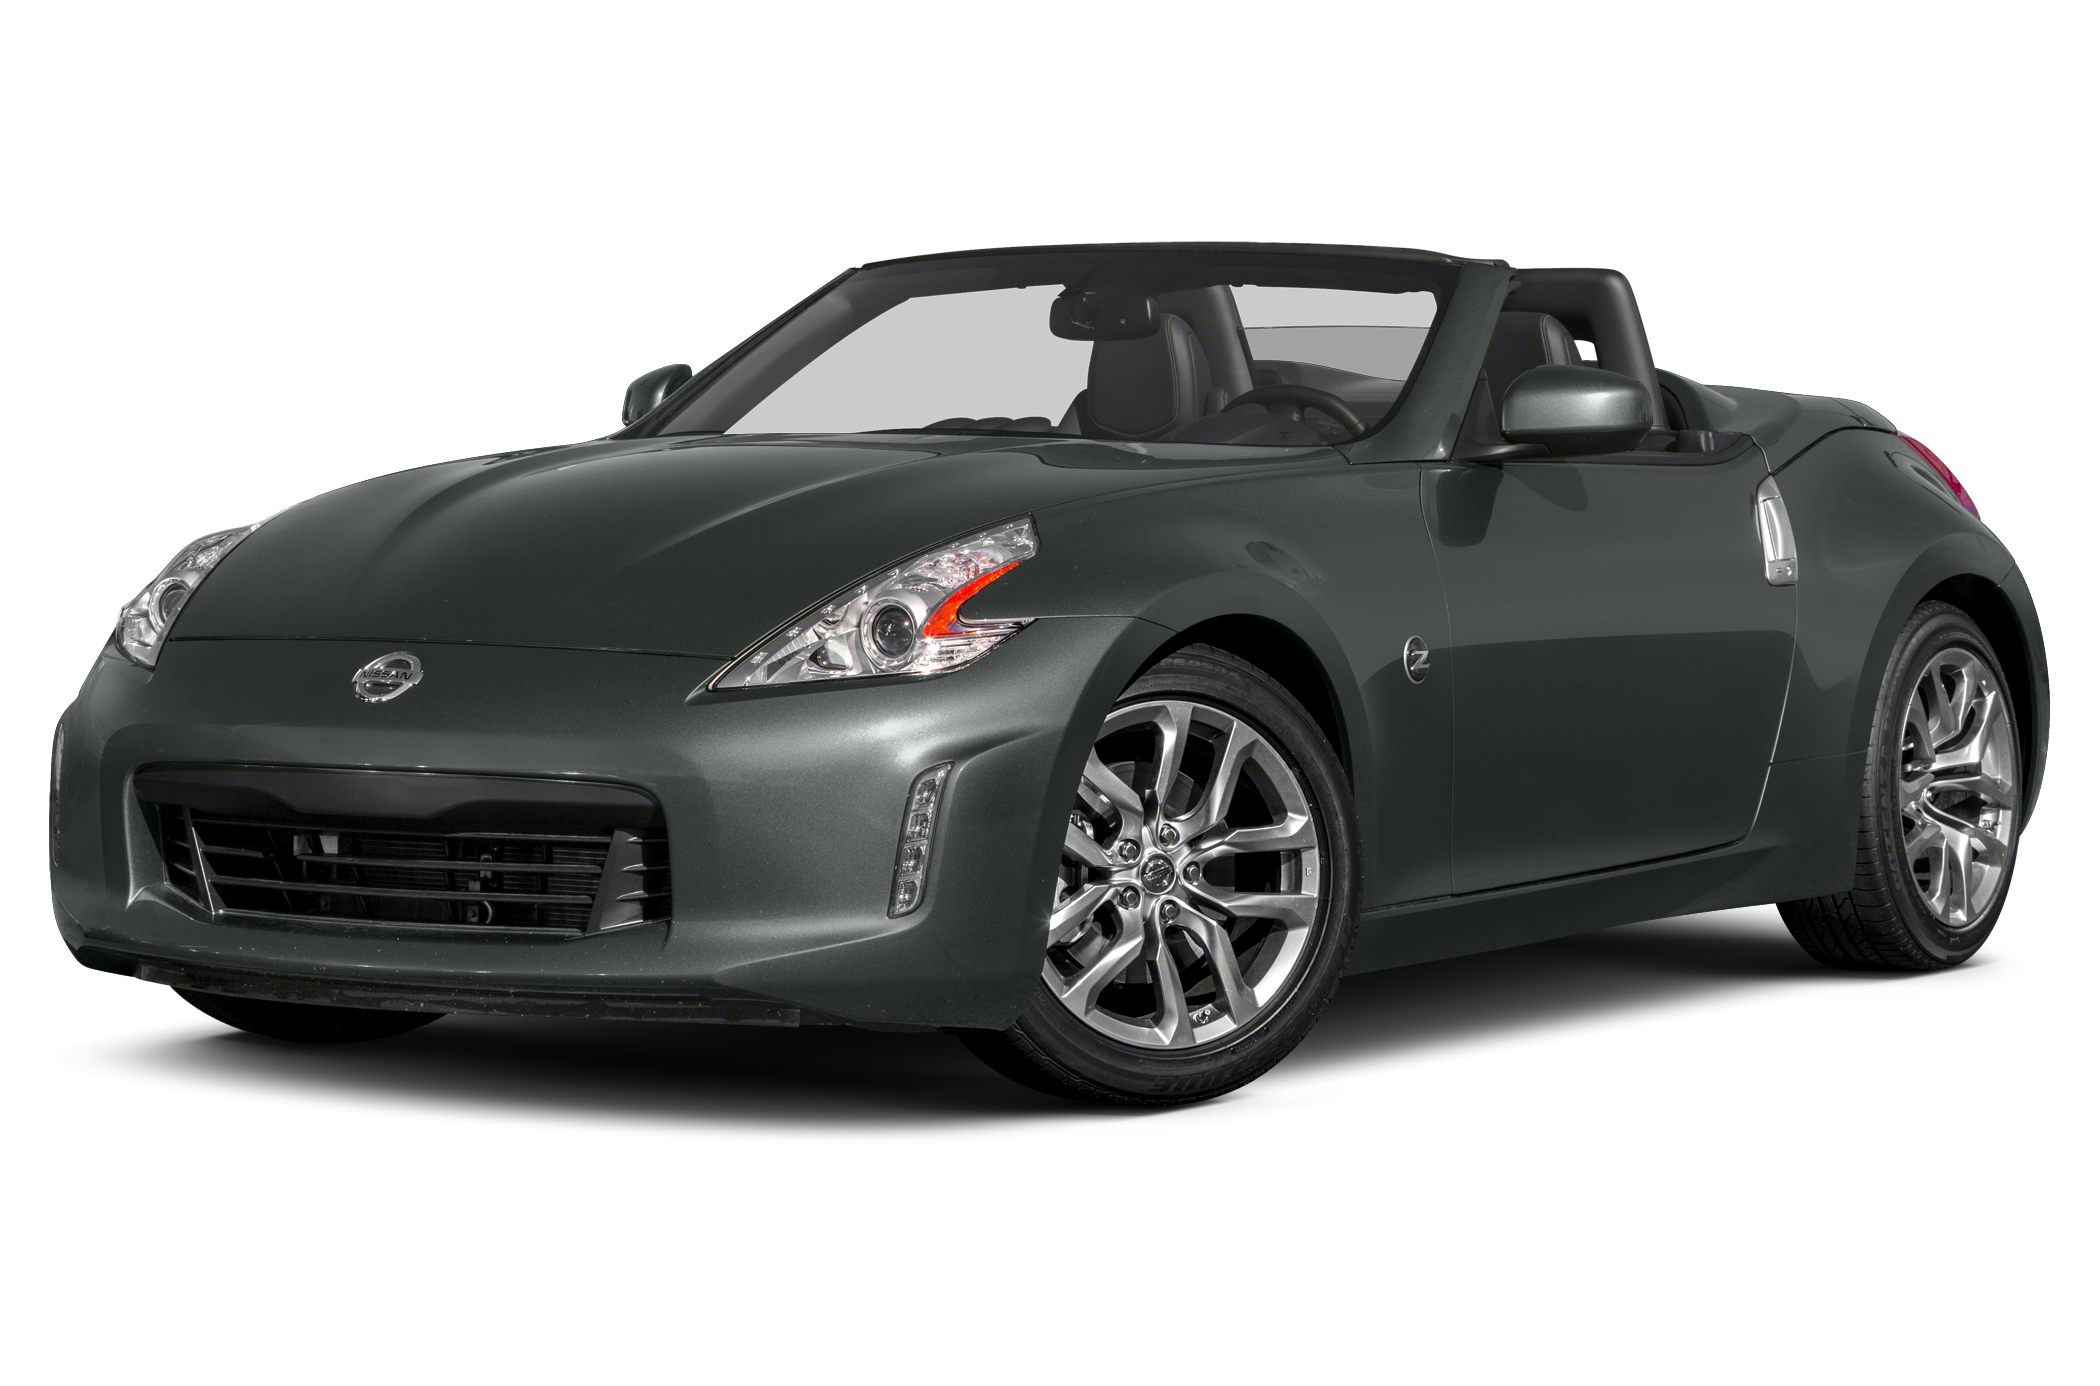 2013 Nissan 370Z Touring Miles 10019Color Black Stock 38790121 VIN JN1AZ4FH3DM790121